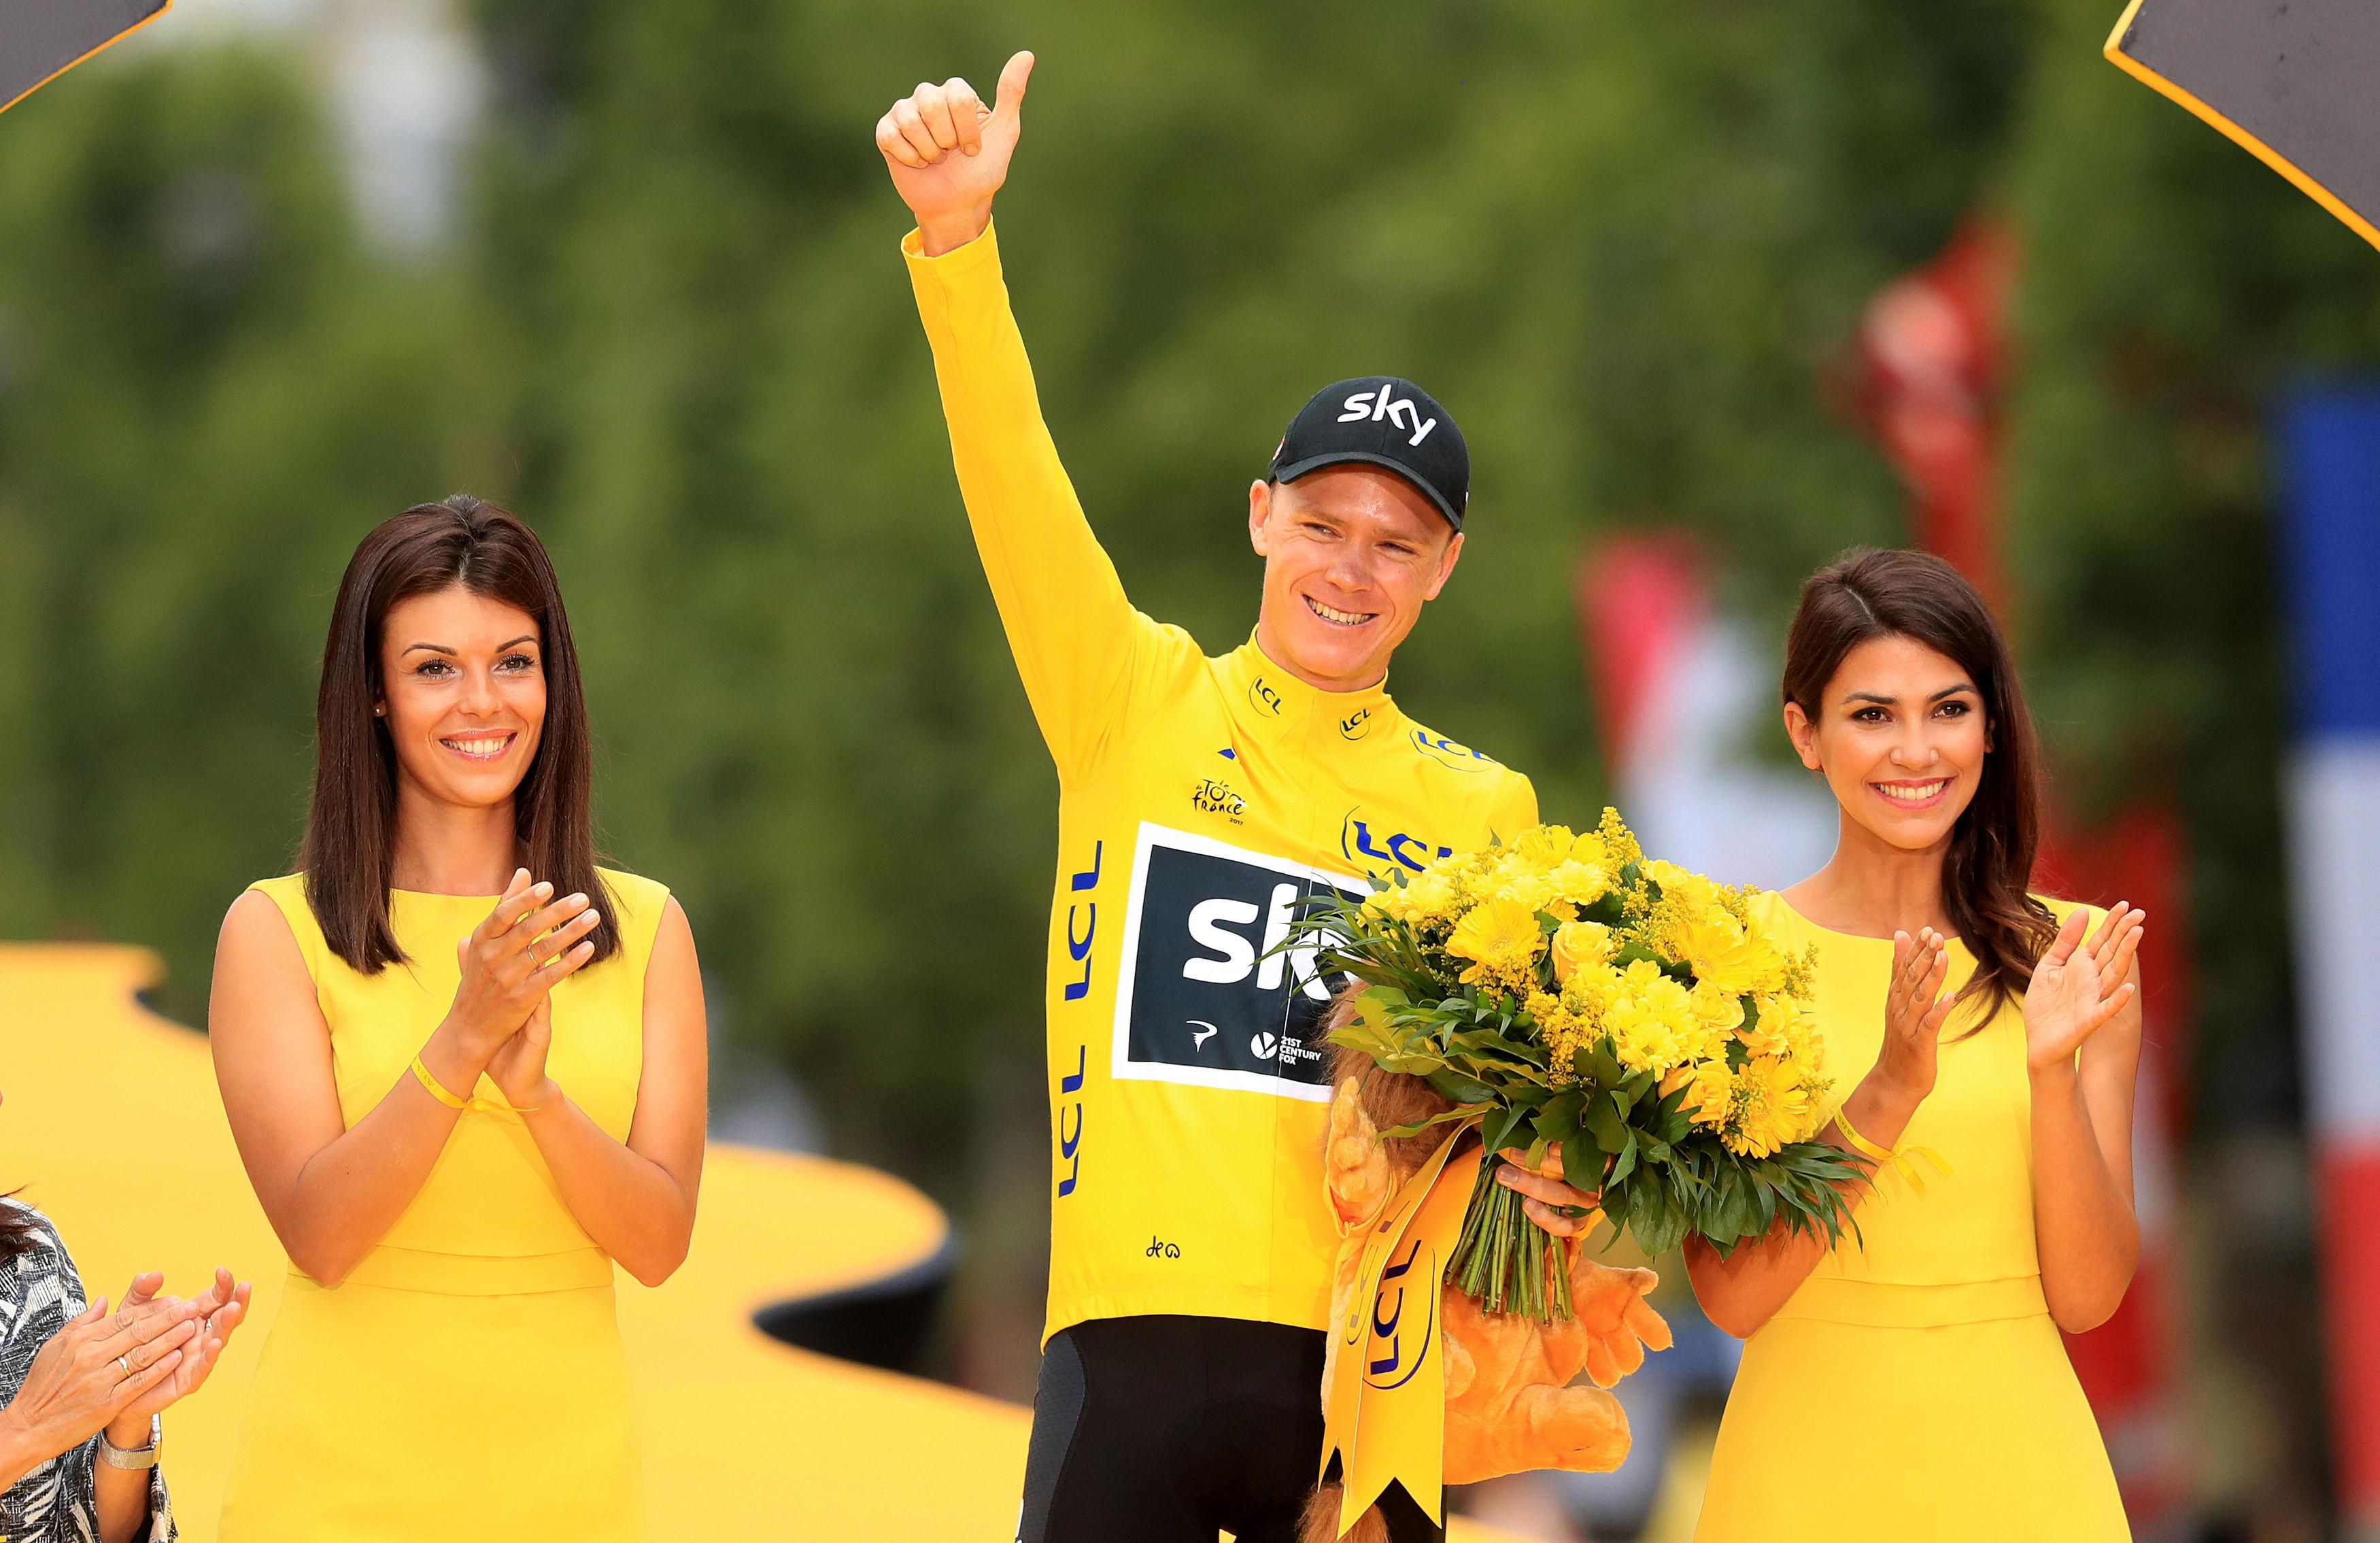 Chris Froome - four-time Tour de France winner and Team Sky's greatest success story